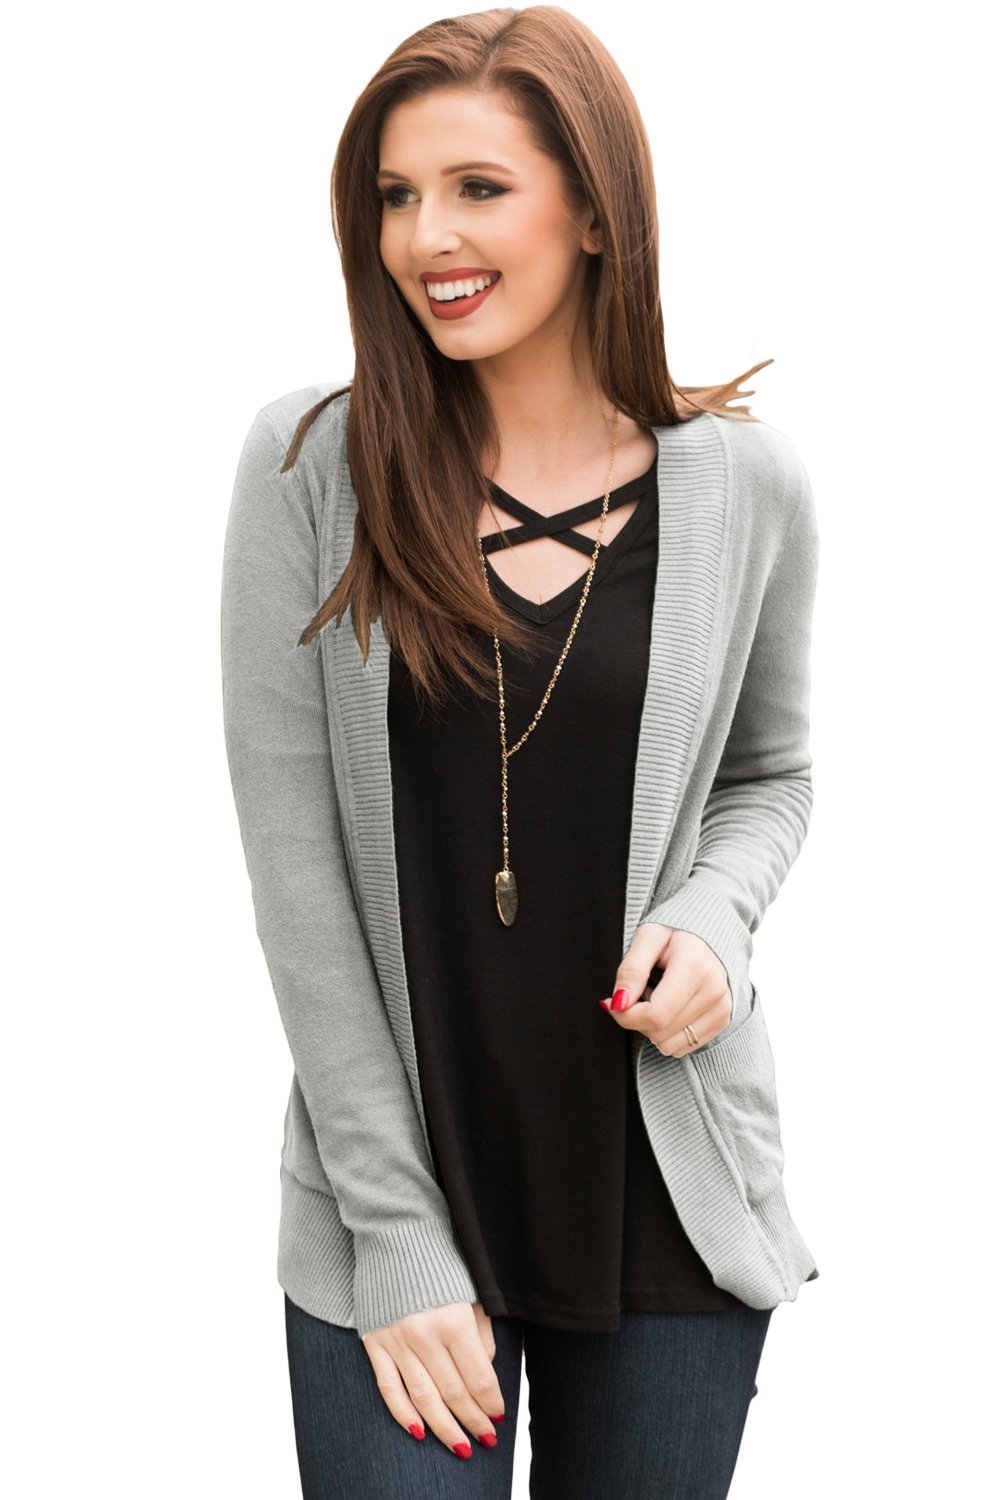 Gray Knit Long Sleeve Cardigan Top with Pockets